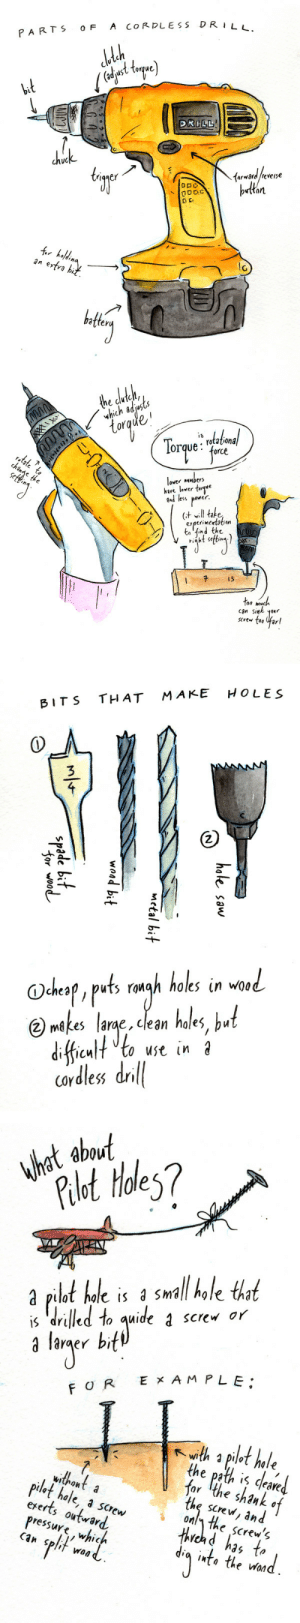 sawdustbear:  Some assorted sketches from a zine series I wanna do about building things. This one will be about putting screws in and making holes in wood!Which is a very straightforward thing to do, but sometime it really helps to just have a ton of information about it.: PARTS oF A CORDLESS DRI  ust torque  uC  iqger  dtan  lc  bte   yhich ad usts  or  orque:  . rotationa  orc  hare laver  ind less pawer  erperimcrtatian  tn tind tht  svew too far   BITS THAT MAKE HOLES  3  2.  O-  Oche叩,ruts ronoh holes in wod  gh holes in wo0  mkes larac, cean hales,b.  icuto use in  cordless dril|   ADOu  hat about  let toles?  ilot hole is 3 SmalI hale tha  s drilled to quide 1 screv or  laraer  O R EX AM PLE  with a pilet hale,  the path is deaved.  ar The shank o  the screw, and  onl\ the screw^  withonta  dlot hale, a screw  ererts outwar  ressuye whic  Hhvosd has 1o  Can Splif waa  inta the Won sawdustbear:  Some assorted sketches from a zine series I wanna do about building things. This one will be about putting screws in and making holes in wood!Which is a very straightforward thing to do, but sometime it really helps to just have a ton of information about it.